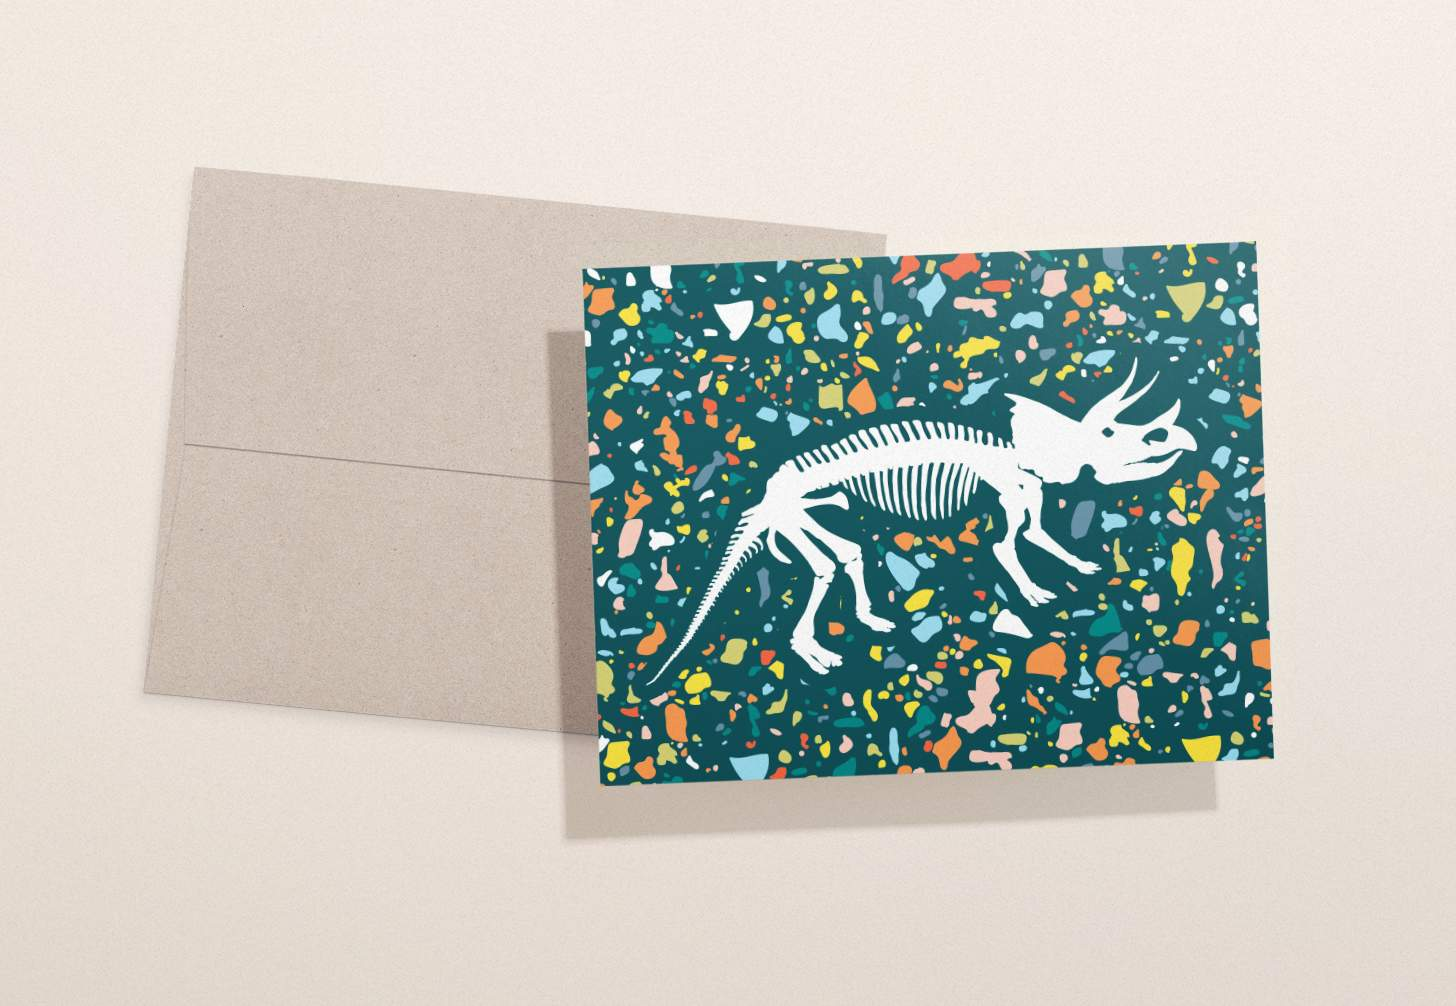 Dinosaur bones design with colorful background and brown envelope